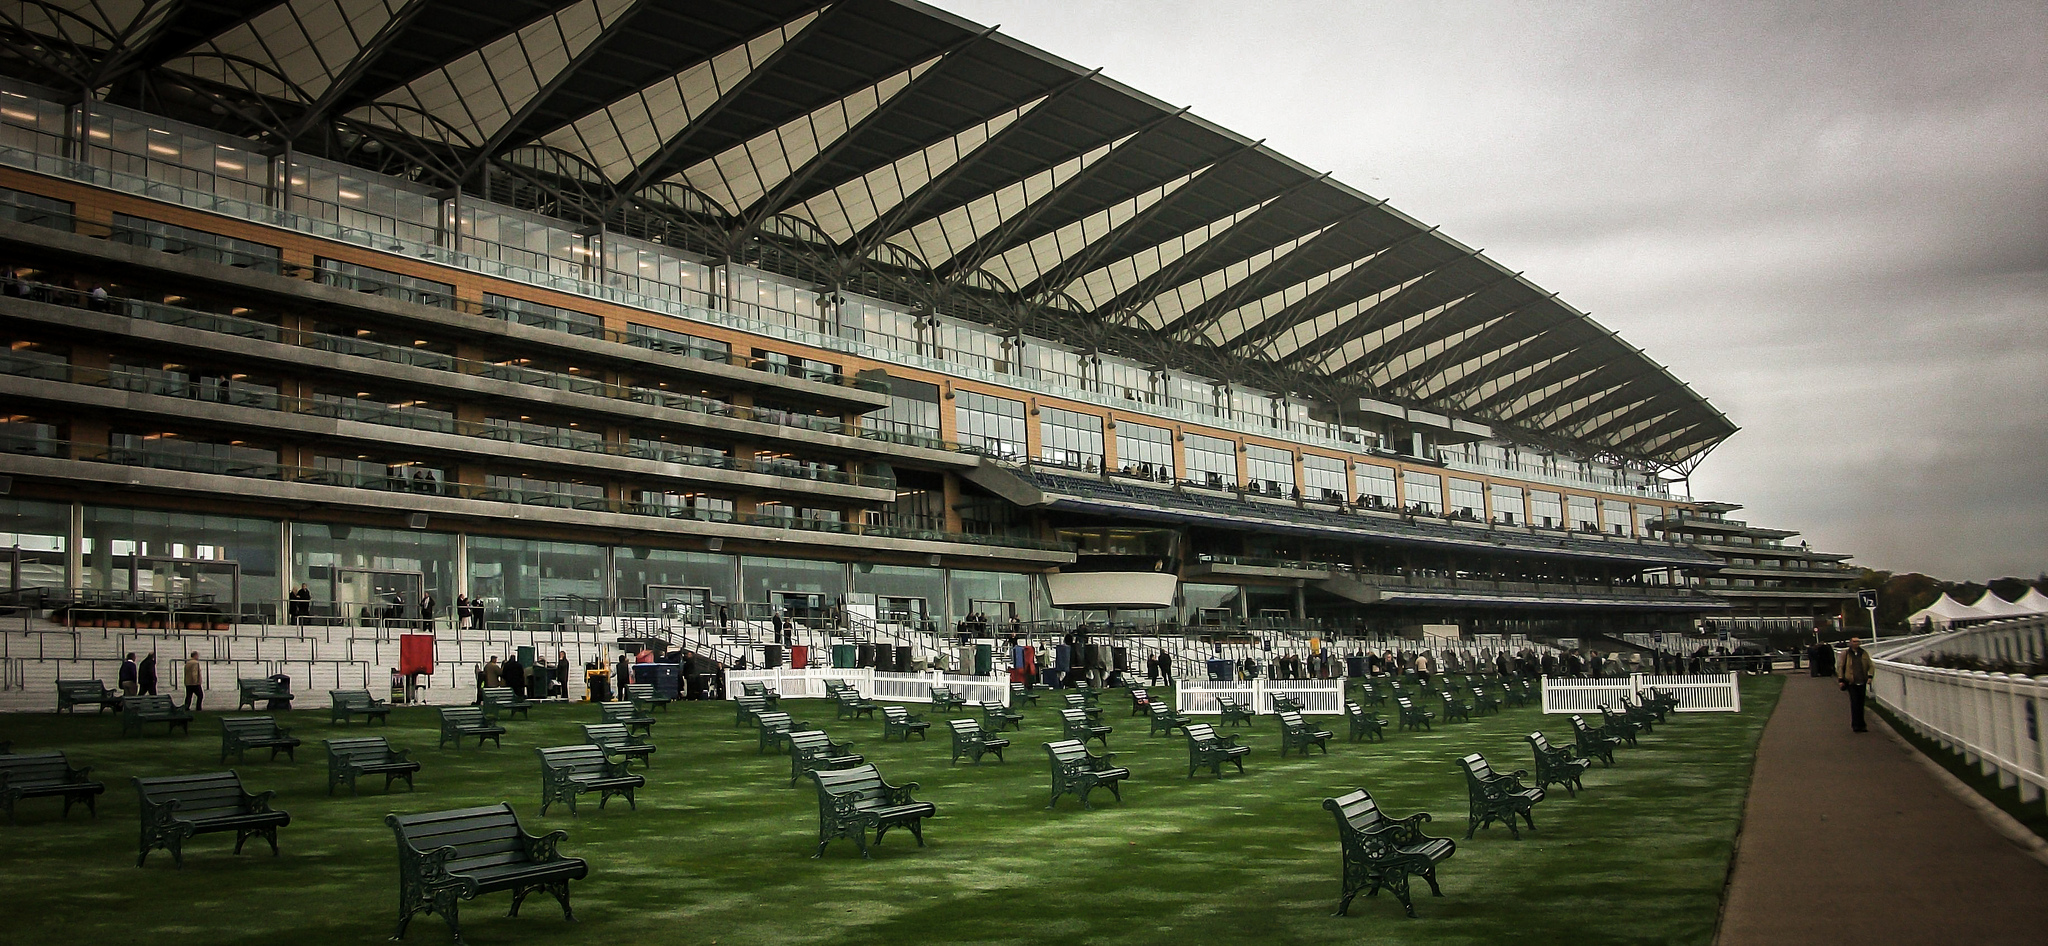 Ascot Grand Stand, by Florian Christoph